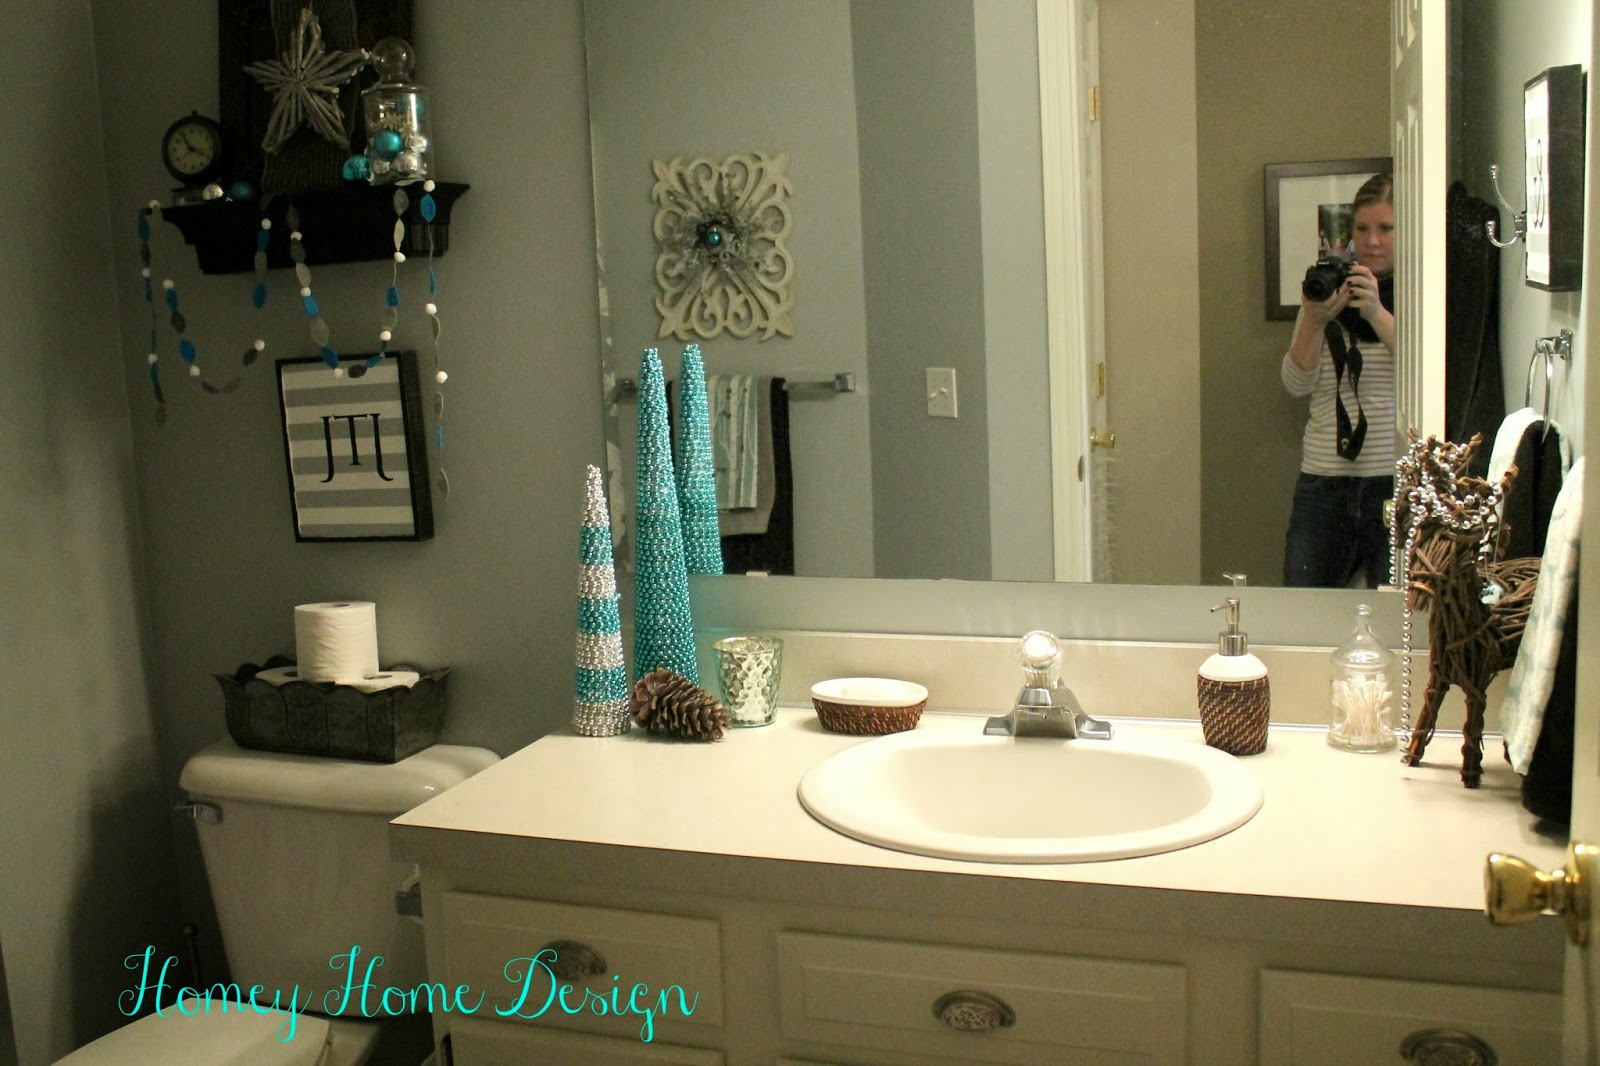 Homey home design bathroom christmas ideas for Washroom decor ideas